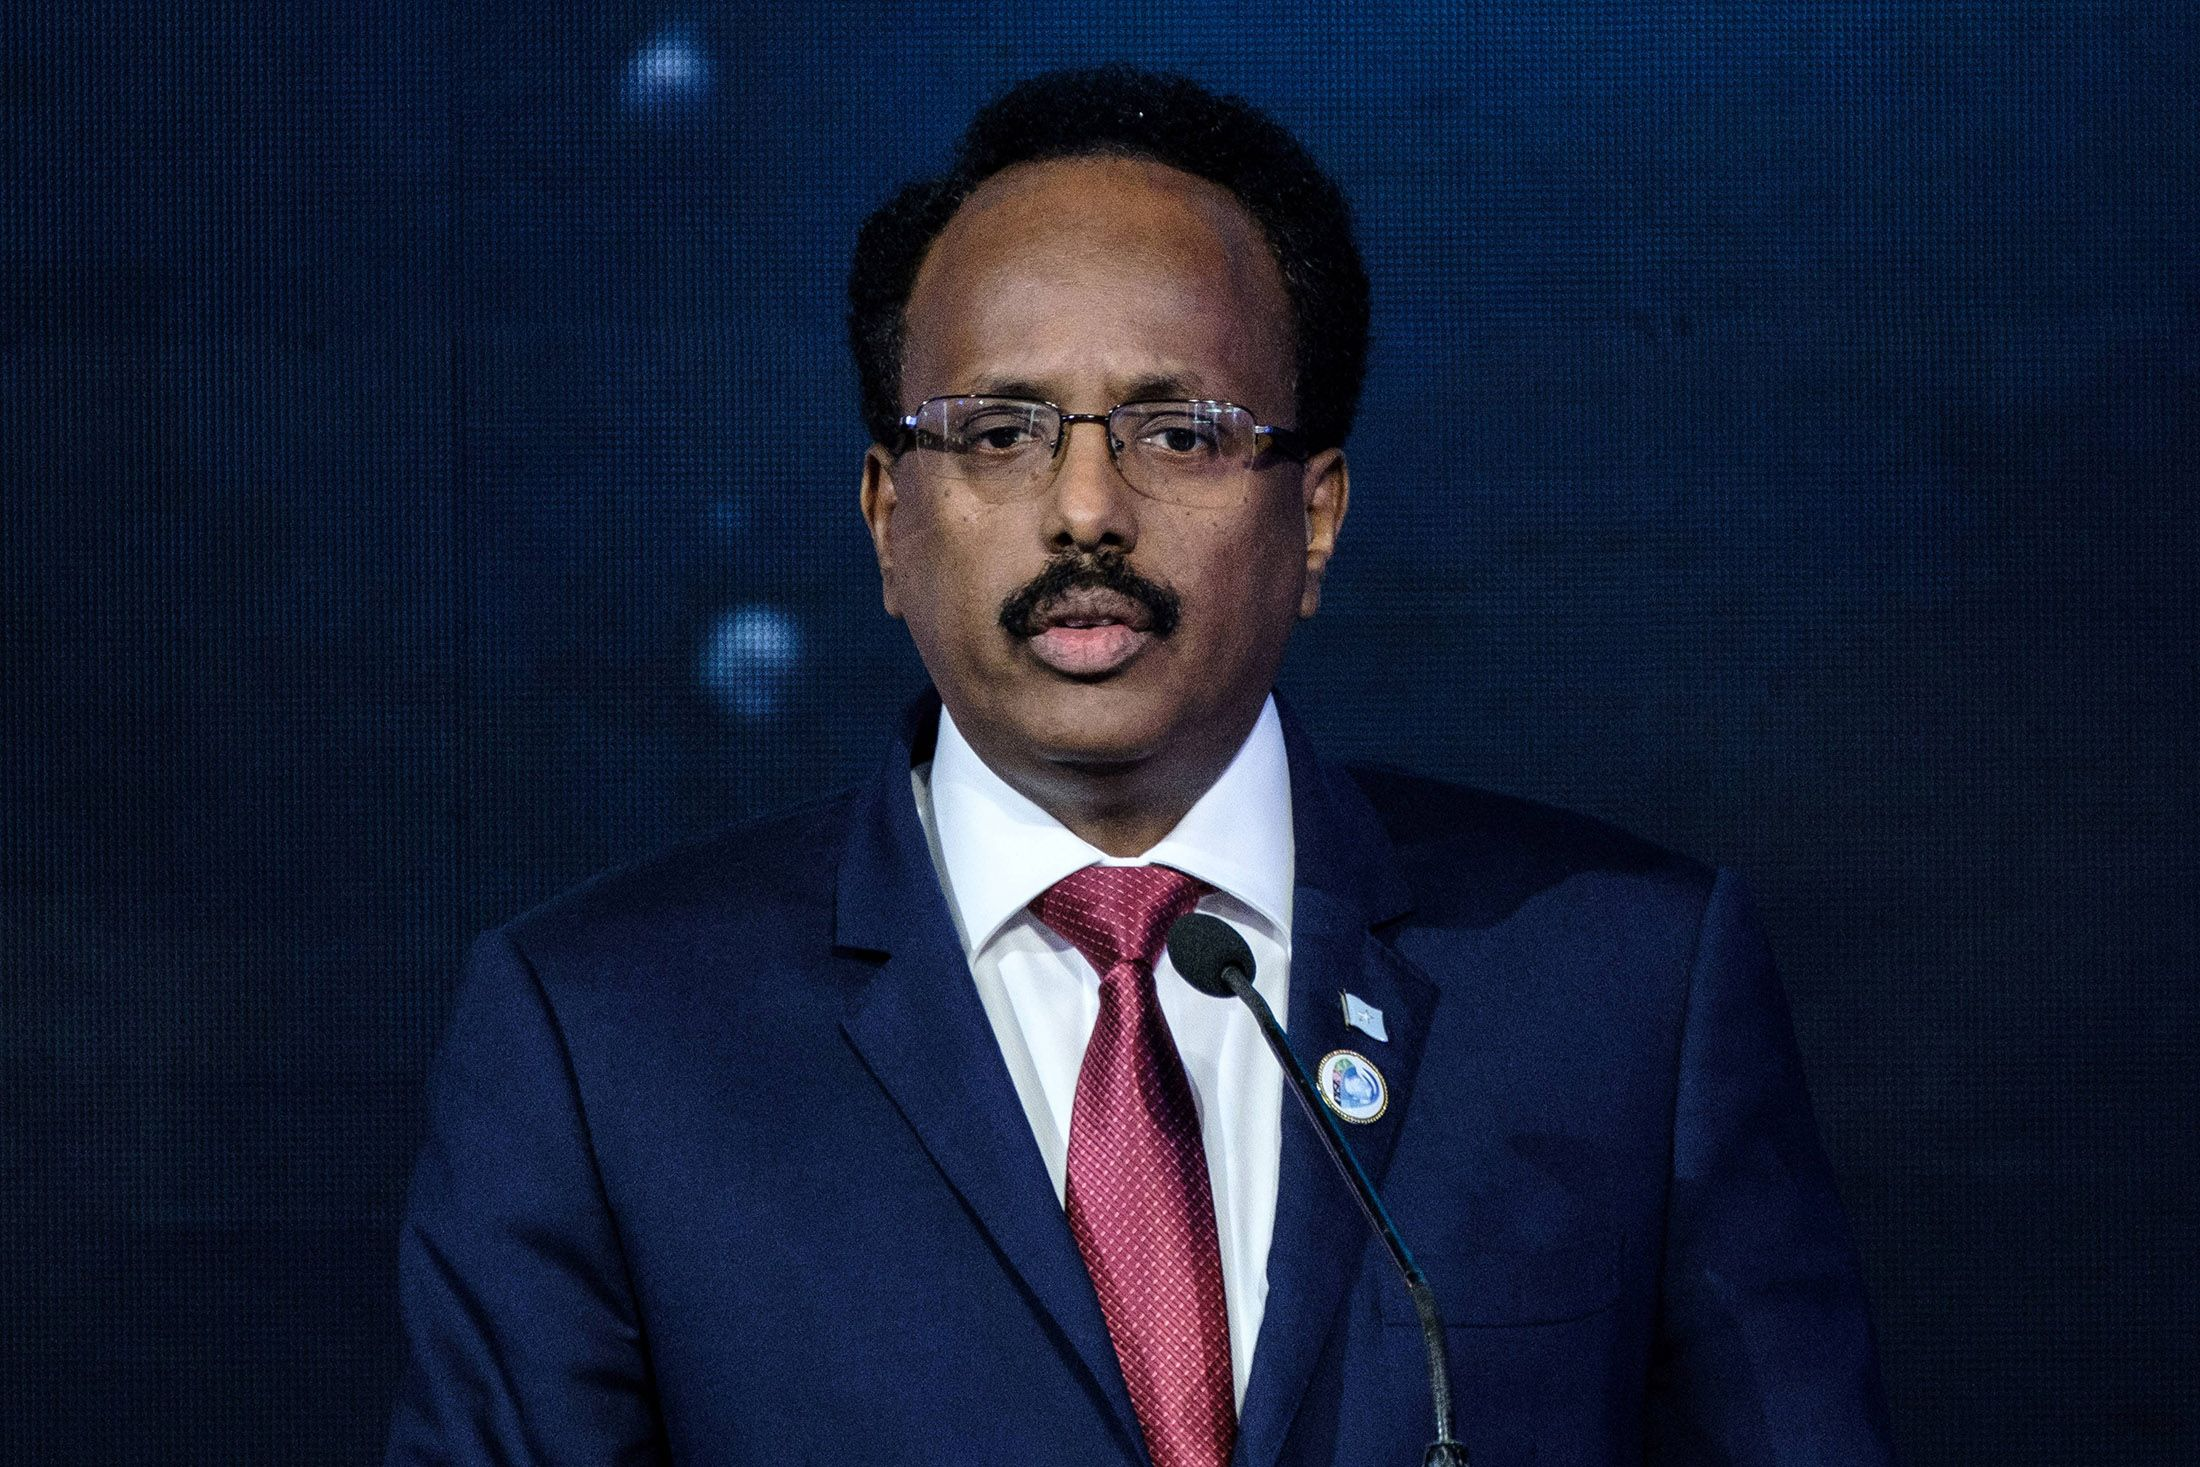 Somalia Leader Renounces U.S. Citizenship Amid Trump's Rhetoric